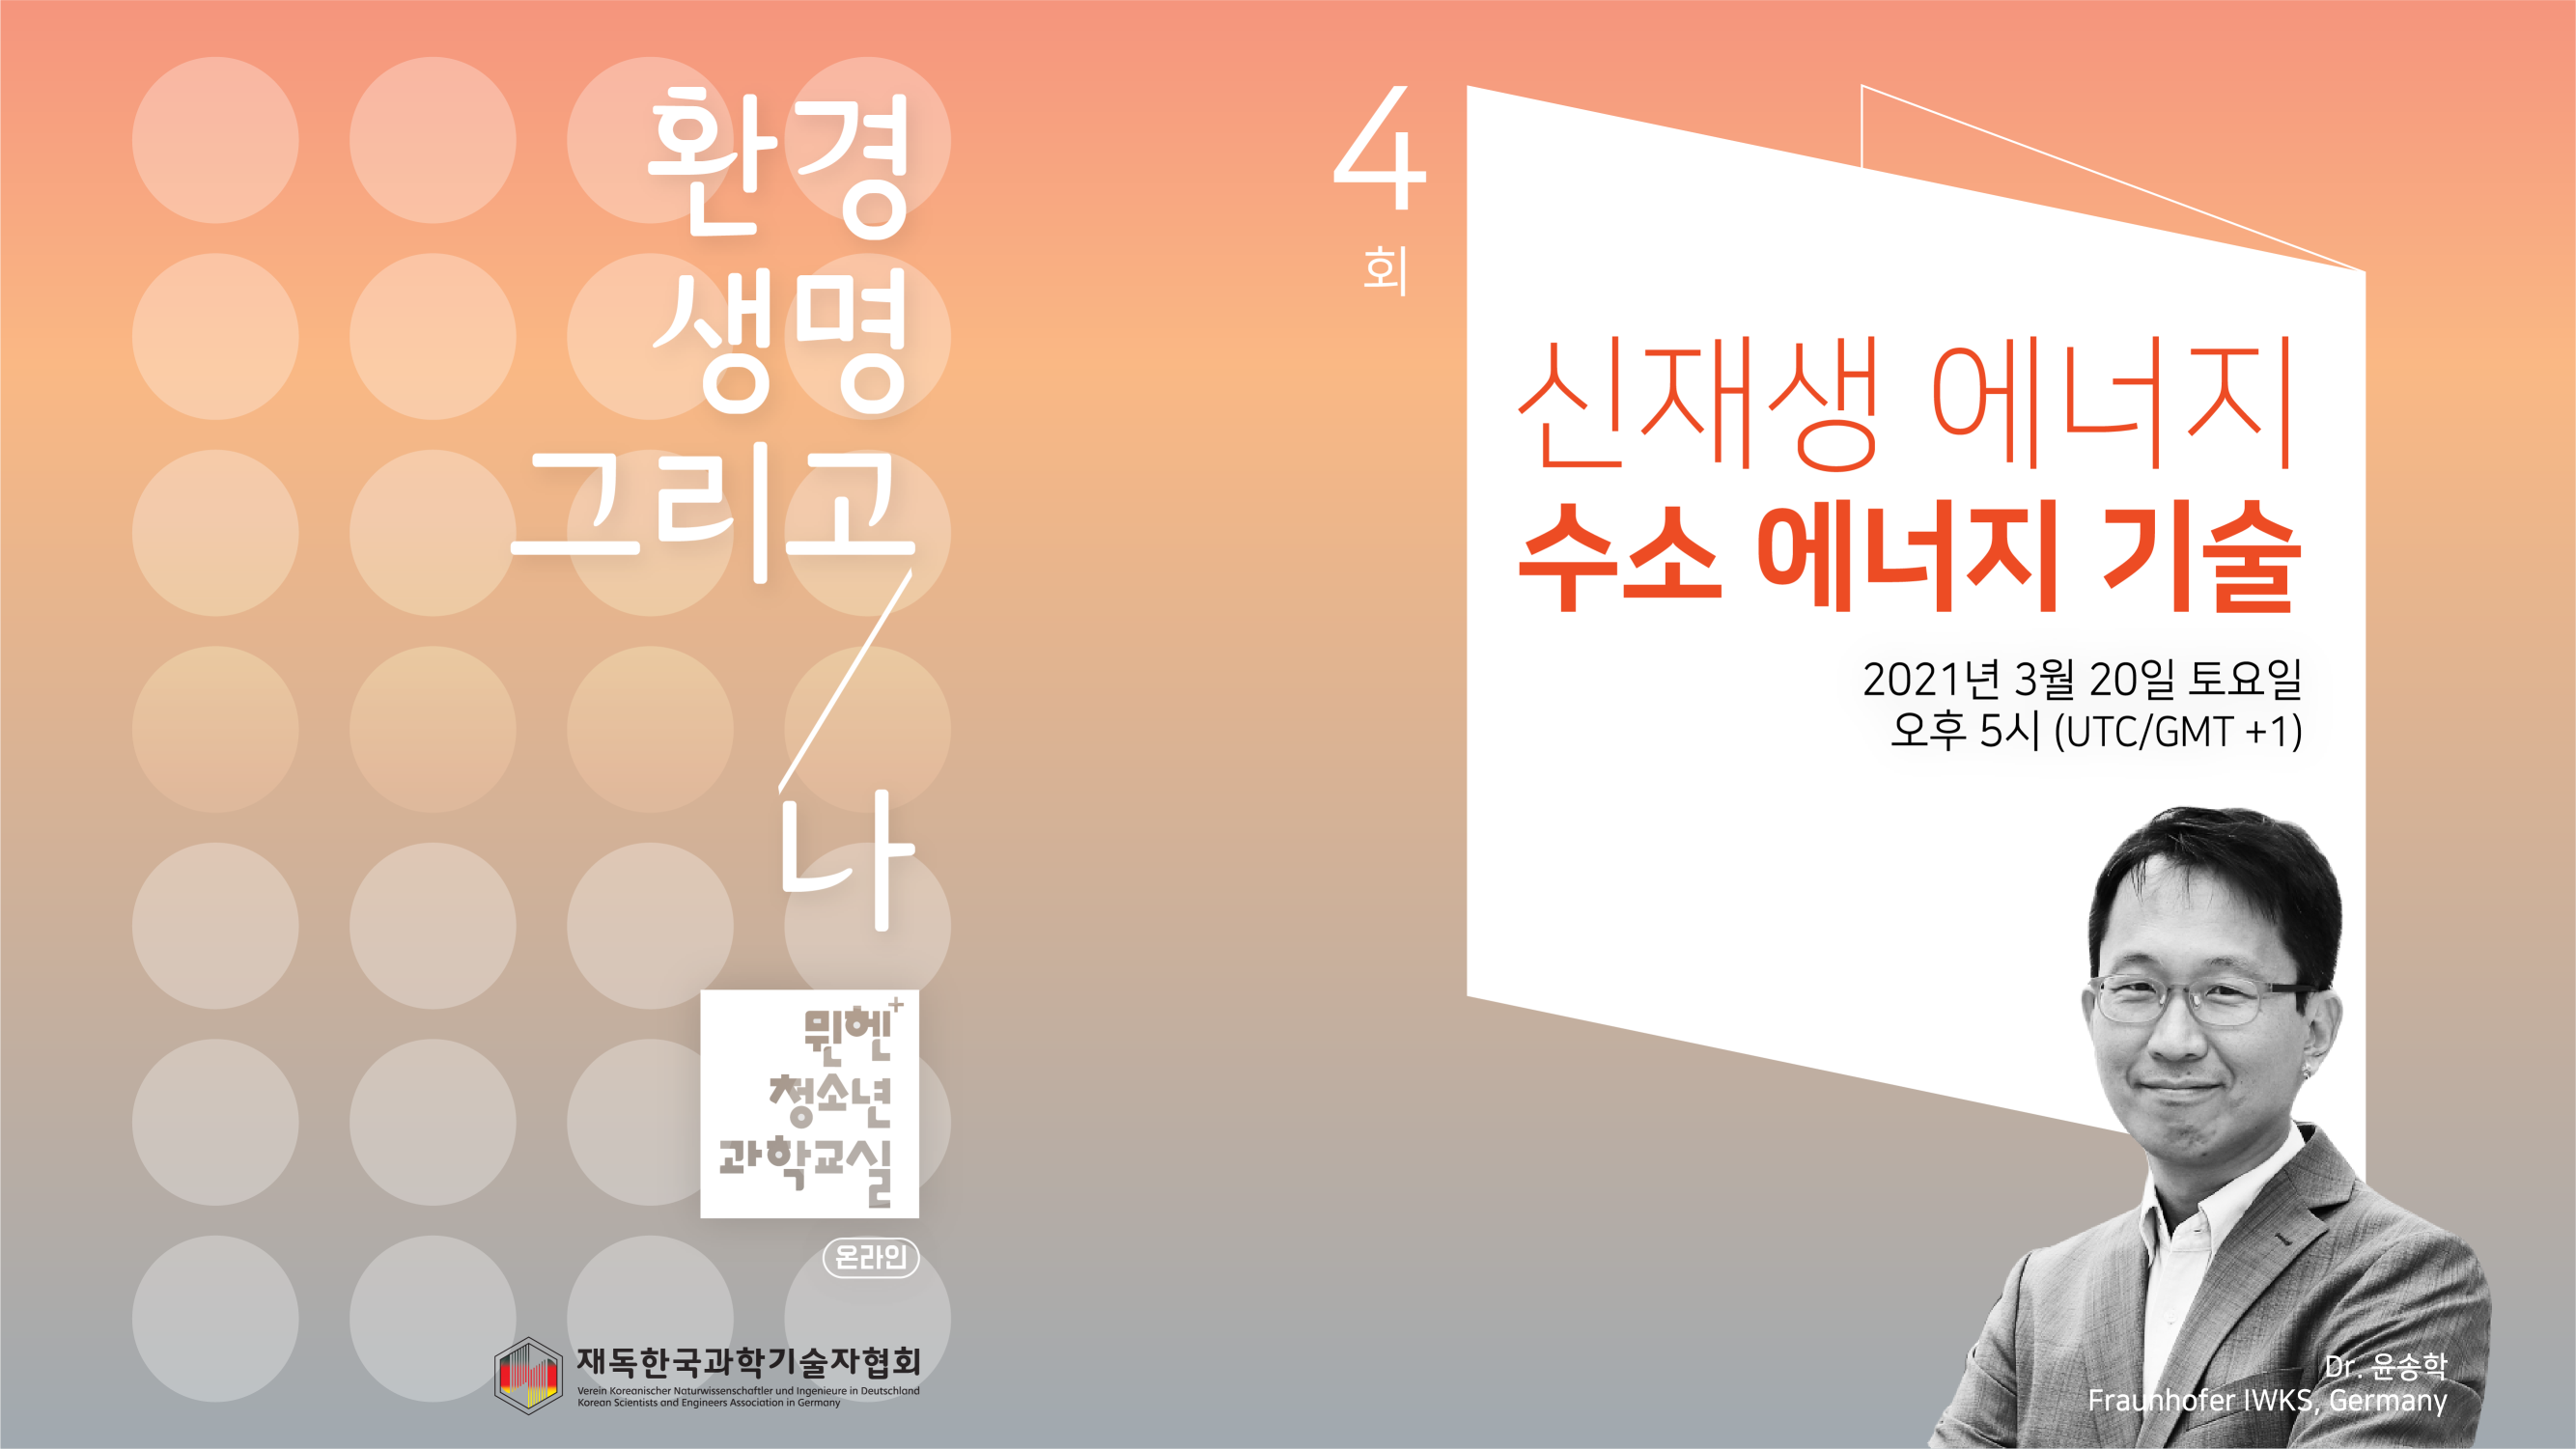 20210205_poster-04 (1).png